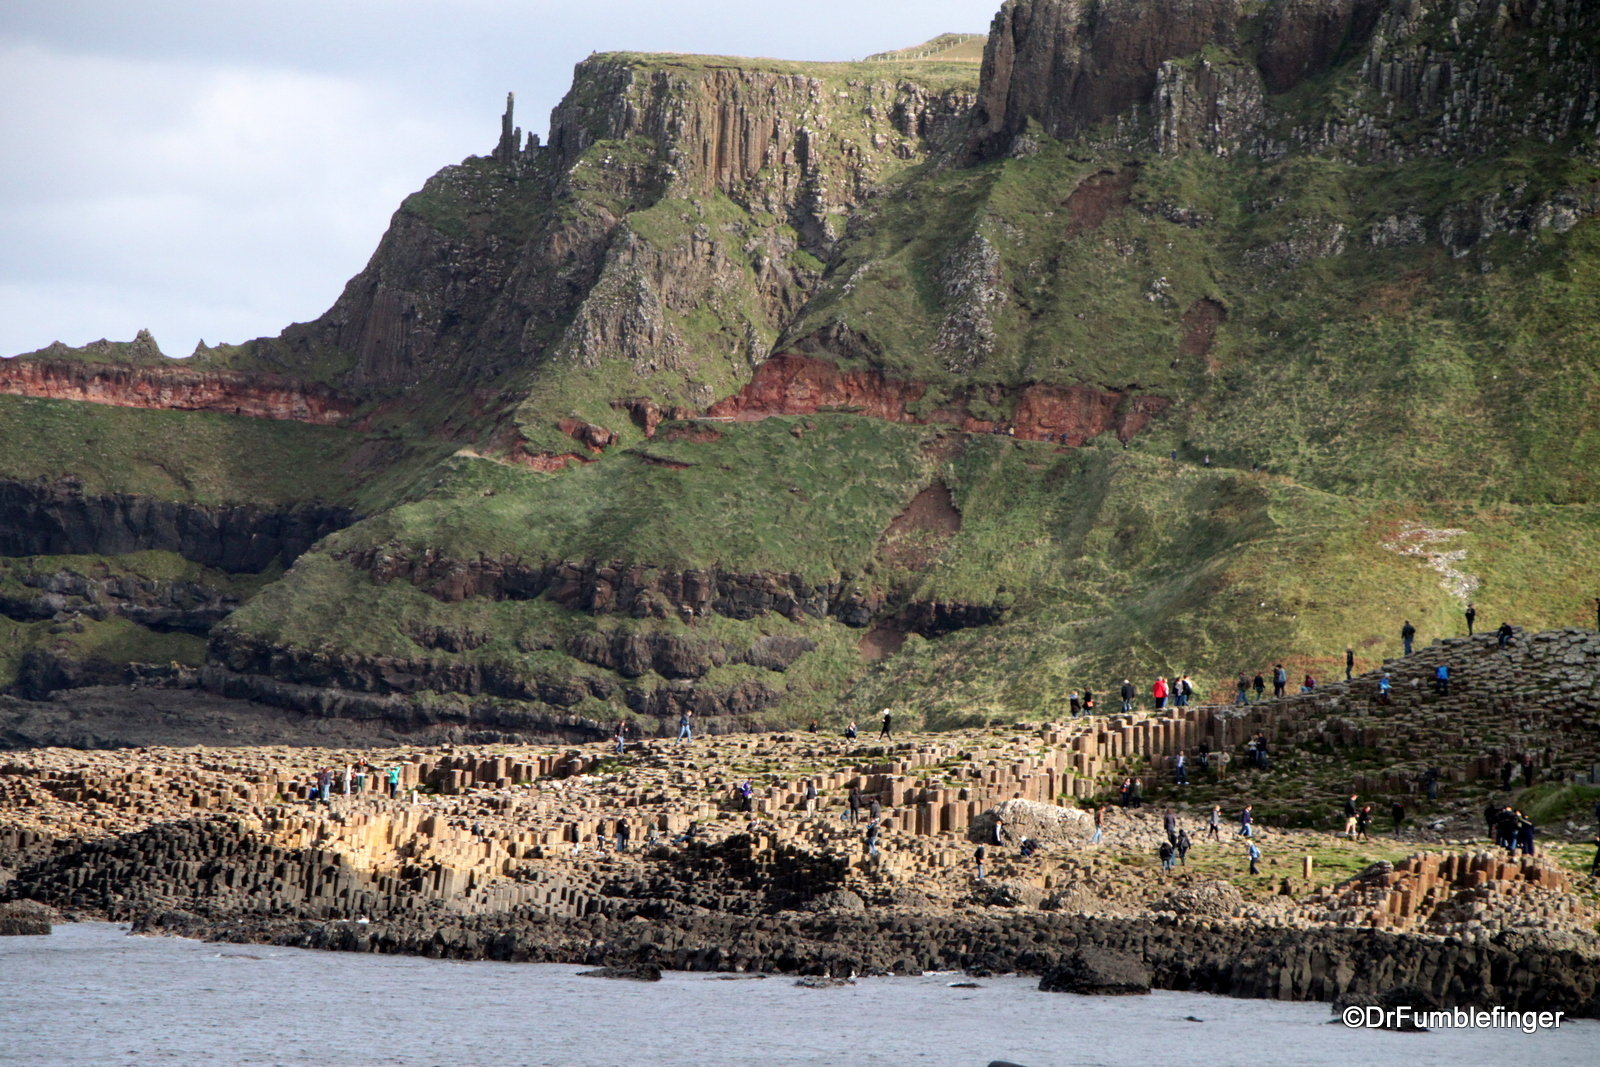 First view of Giant's Causeway